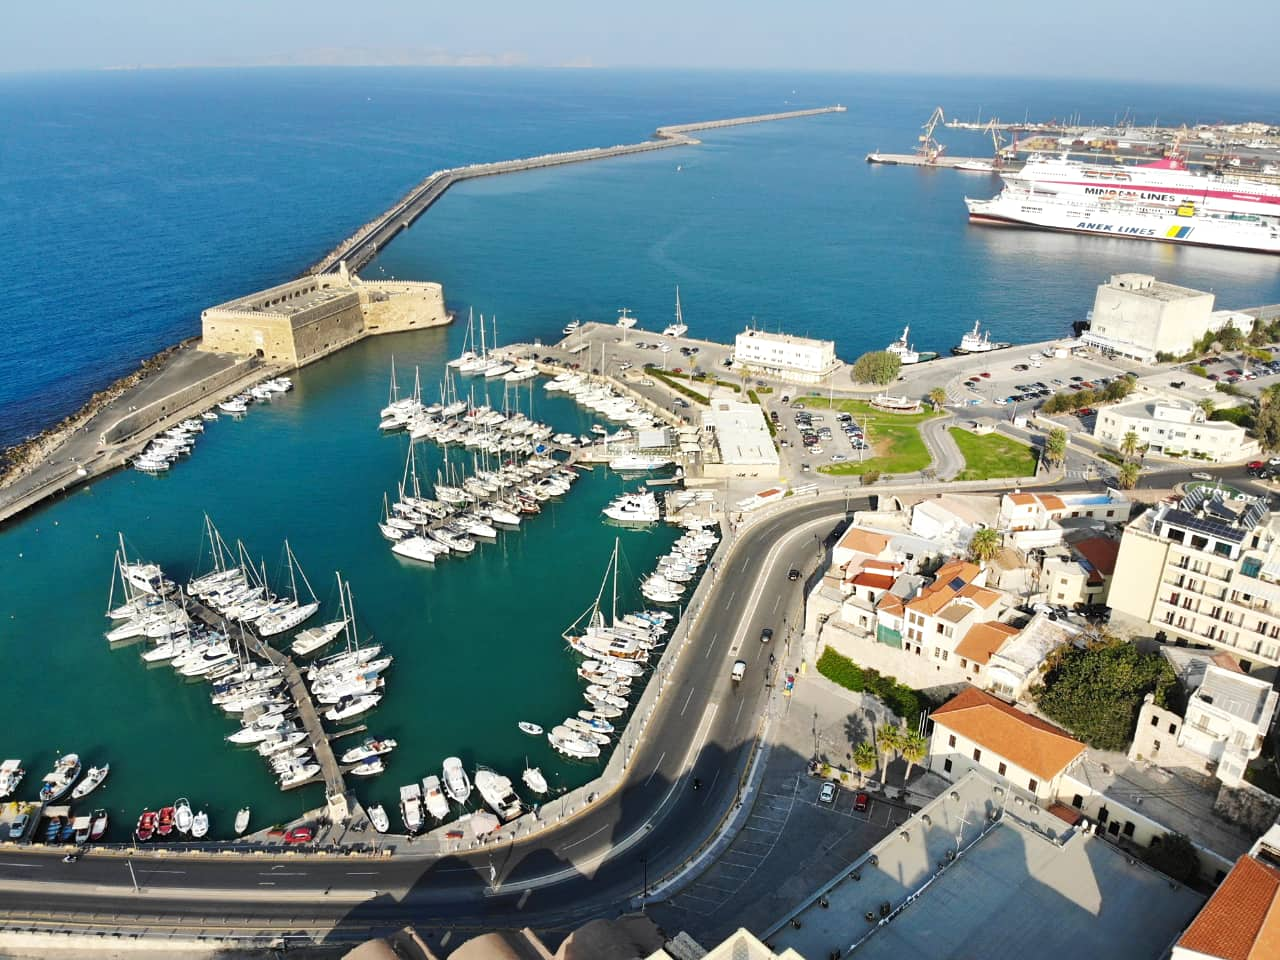 heraklion port, Heraklion travel guide, iraklion travel guide, heraklion things to do, heraklion activities, history of heraklion, museums heraklion, restaurants iraklion, events heraklion, travel tips heraklion, heraklion tours, crete travel, the crete you are looking for